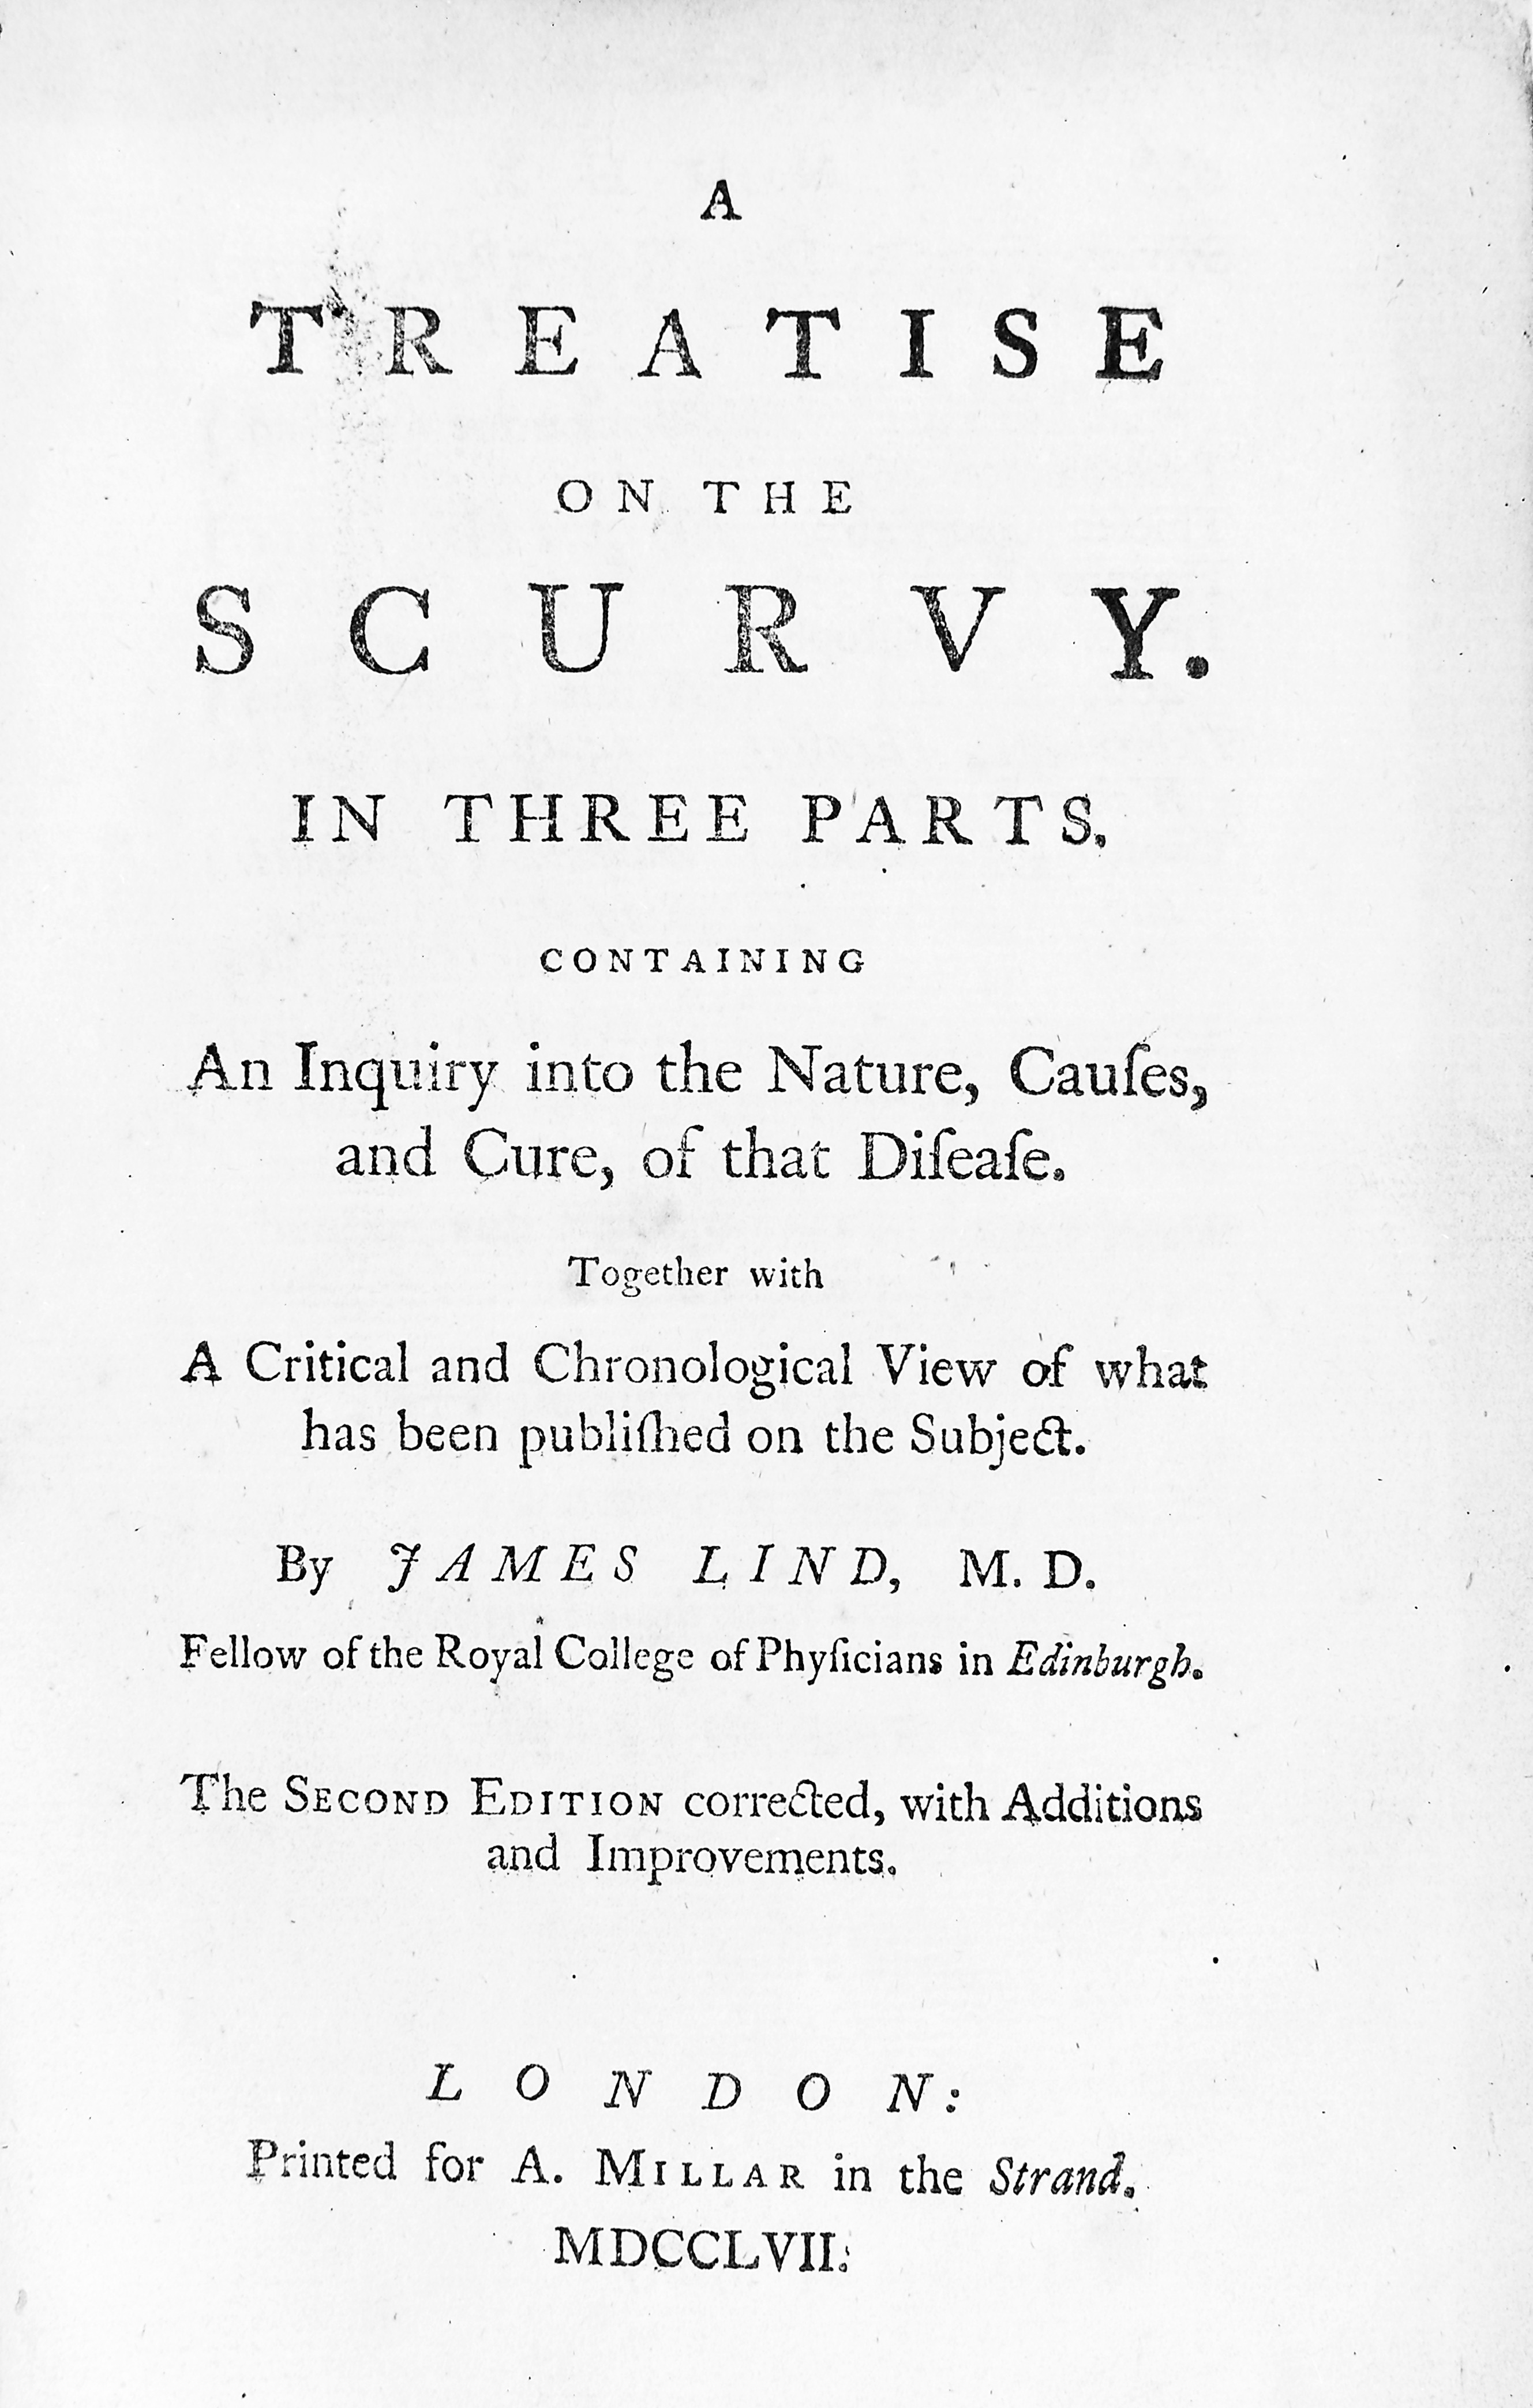 James_Lind,_A_Treatise_on_the_Scurvy,_1757_Wellcome_M0013130